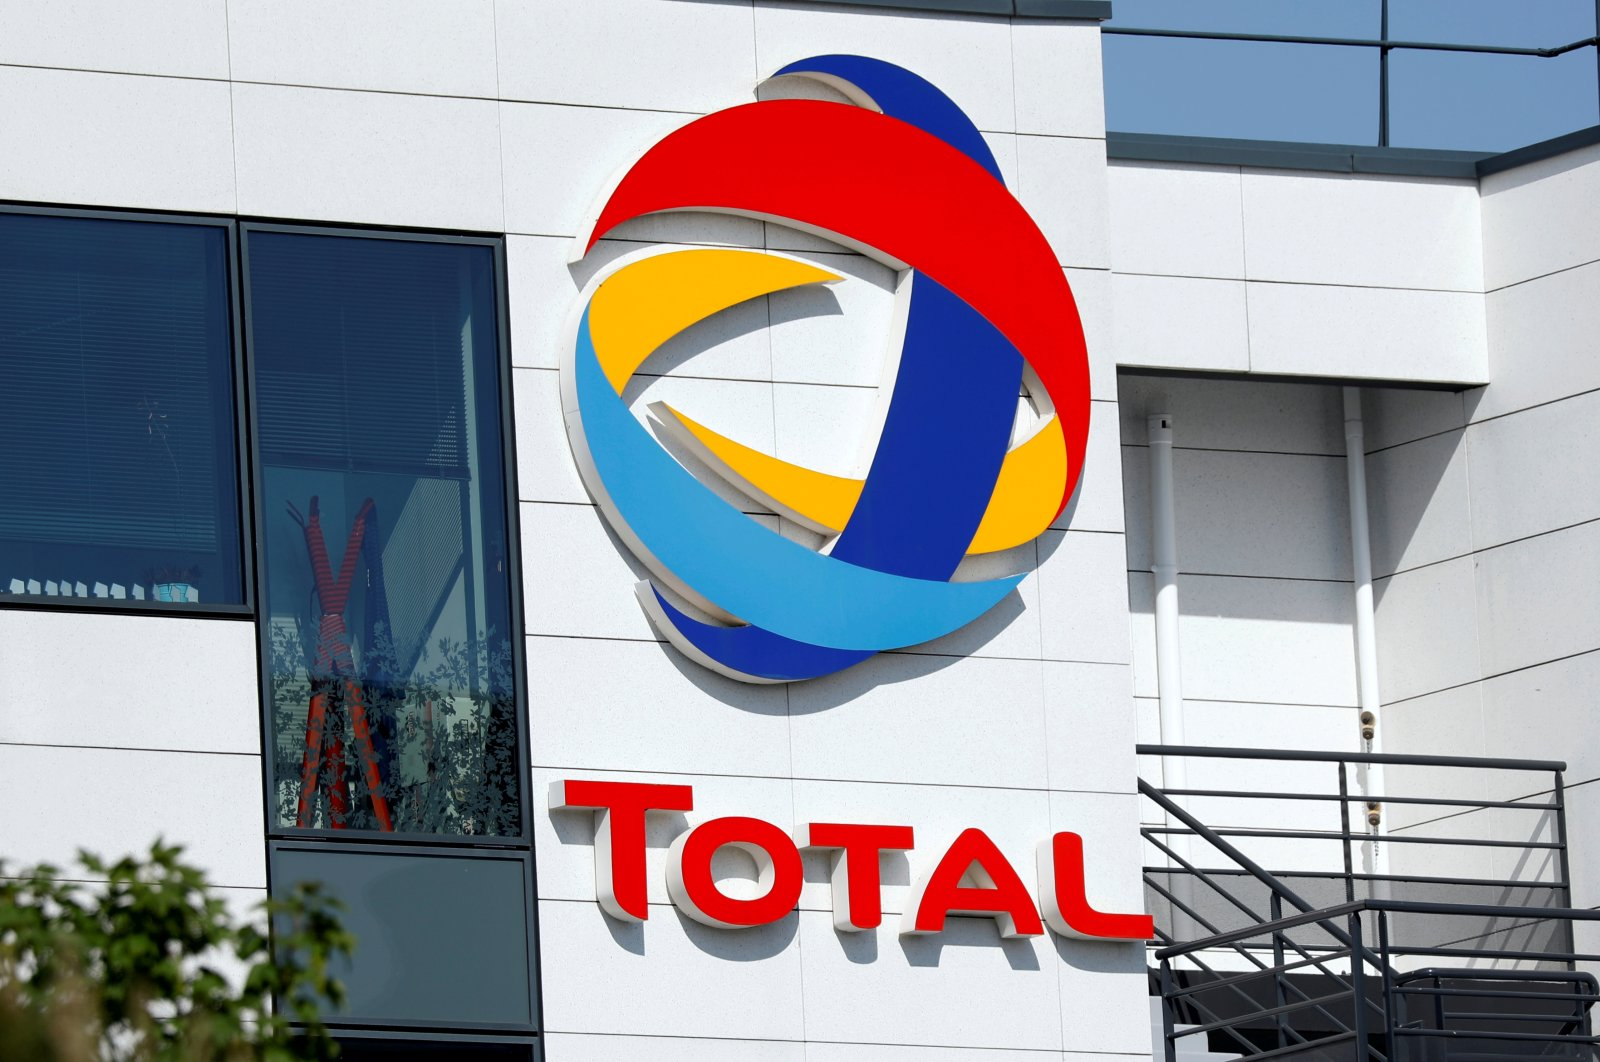 The logo of Total is pictured at the company's headquarters in Rueil-Malmaison near Paris, France, April 22, 2020. (Reuters Photo)